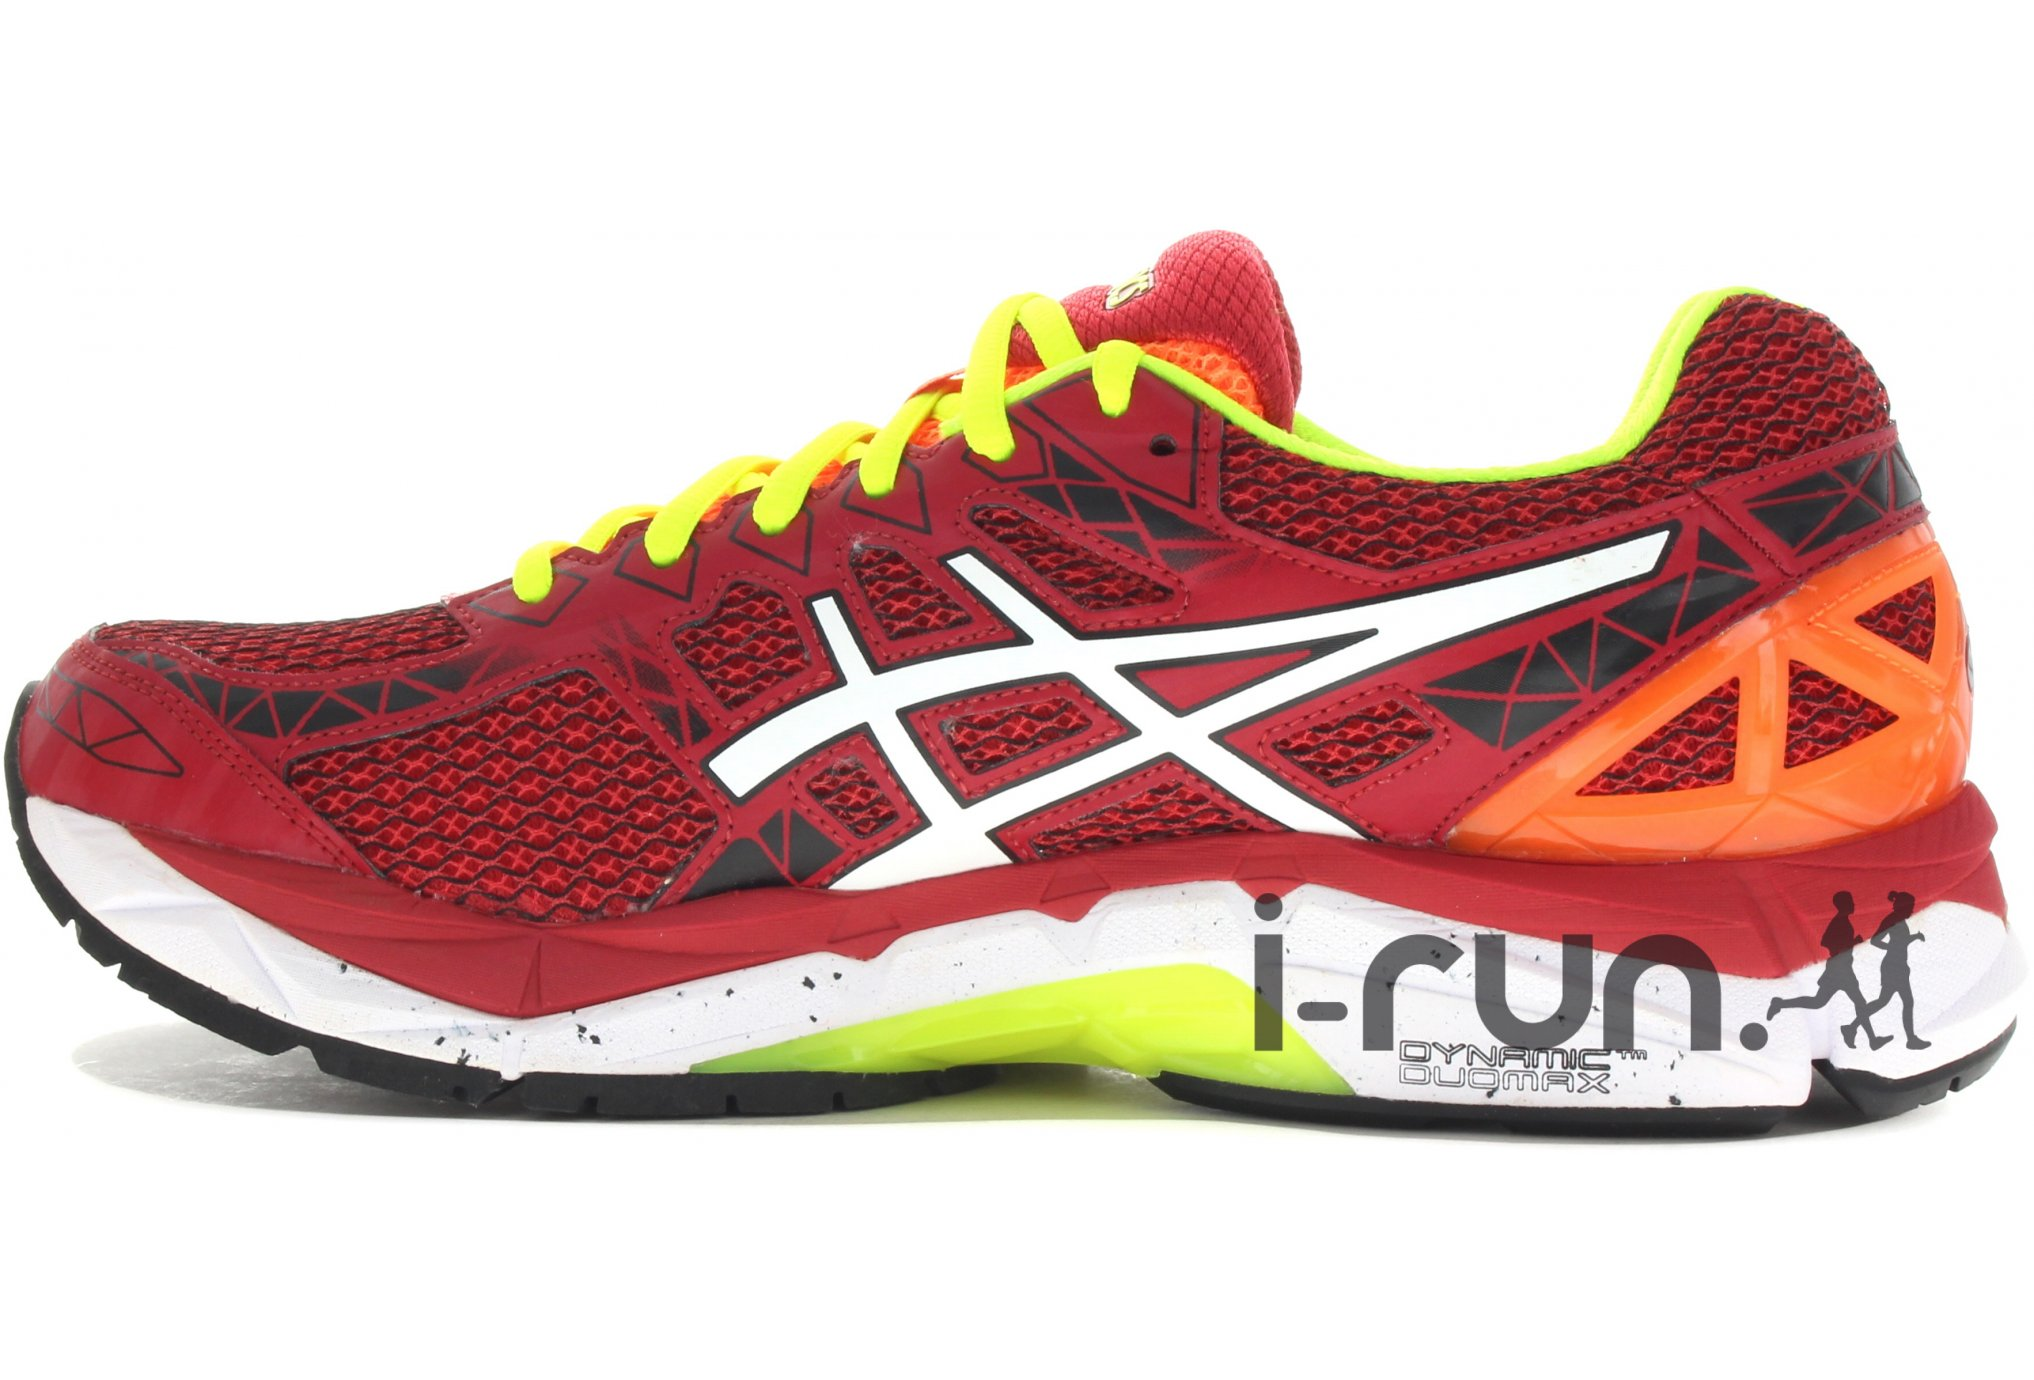 asics shoes hyderabad state india 663731